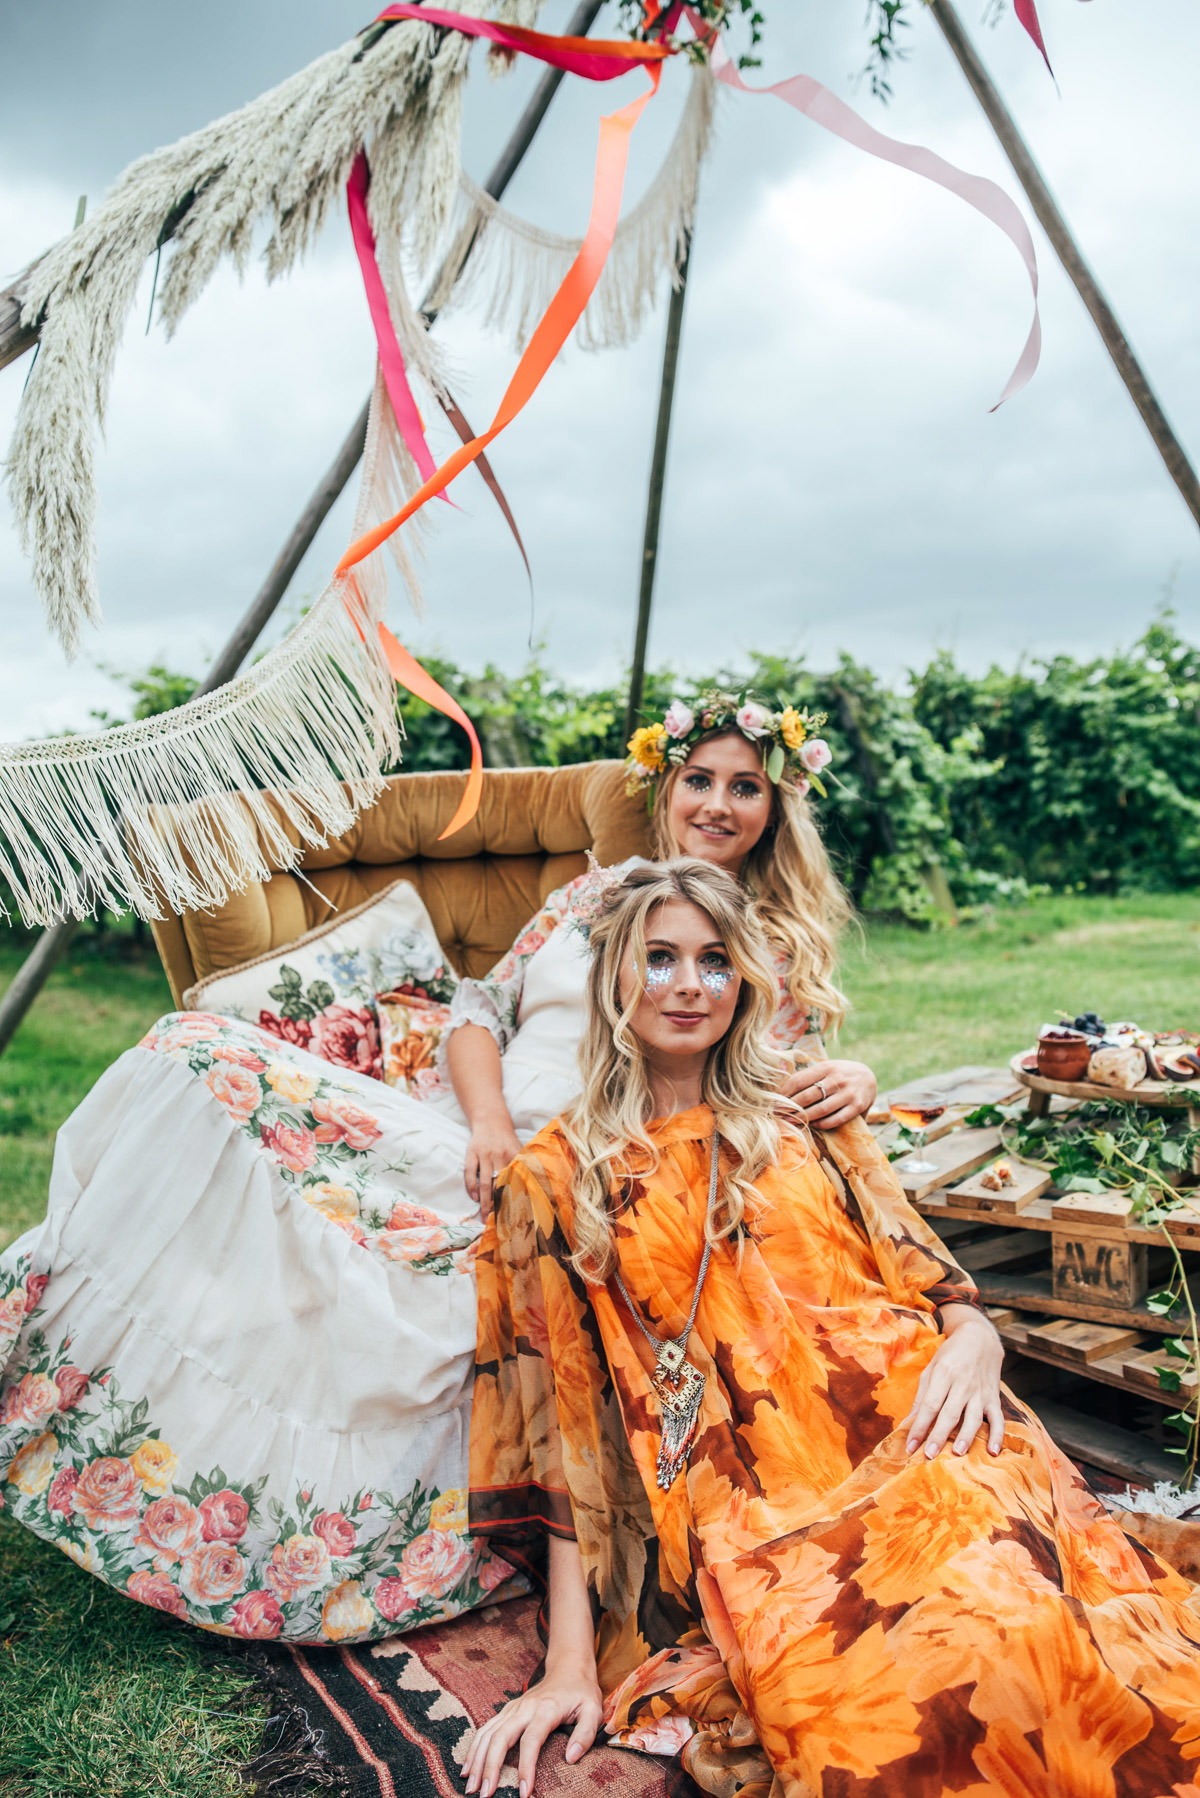 bohemian hen party, boho bride, essex hen party, festival hair, festival hen party, festival make up, garland making, gather & feast events, grazing platters, hen party ideas, naked tipi, starry eyed weddings, The Railway Barn, three flowers photography, unique hen party, vineyards, wine tasting